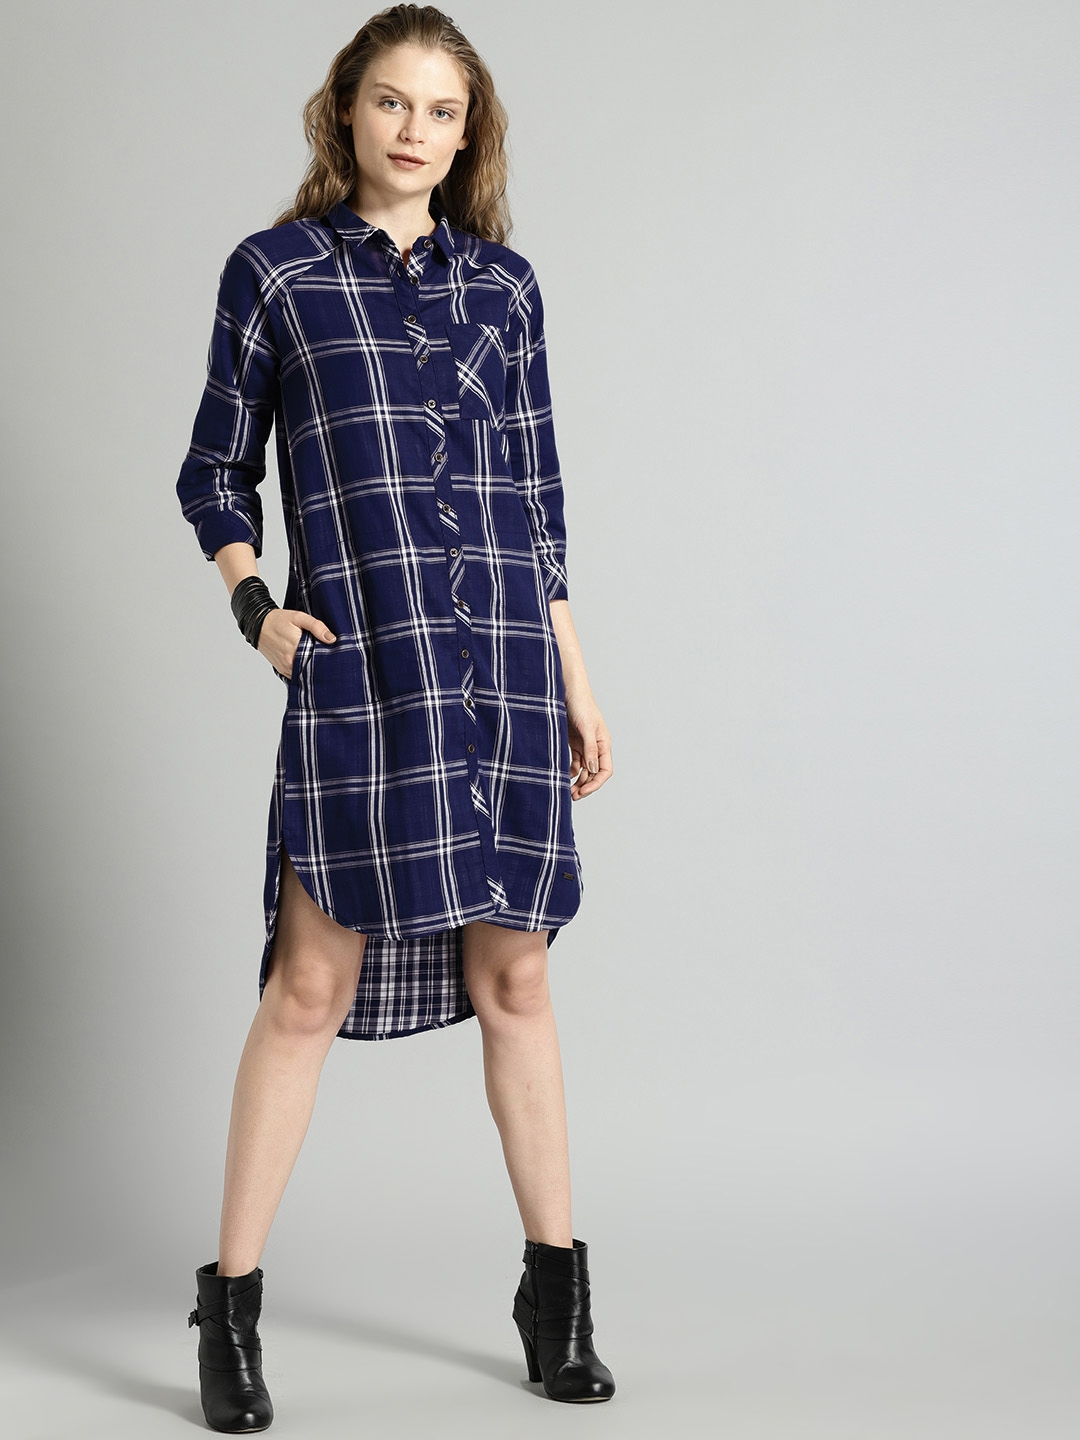 Buy Roadster Women Navy White Checked Shirt Dress Dresses For